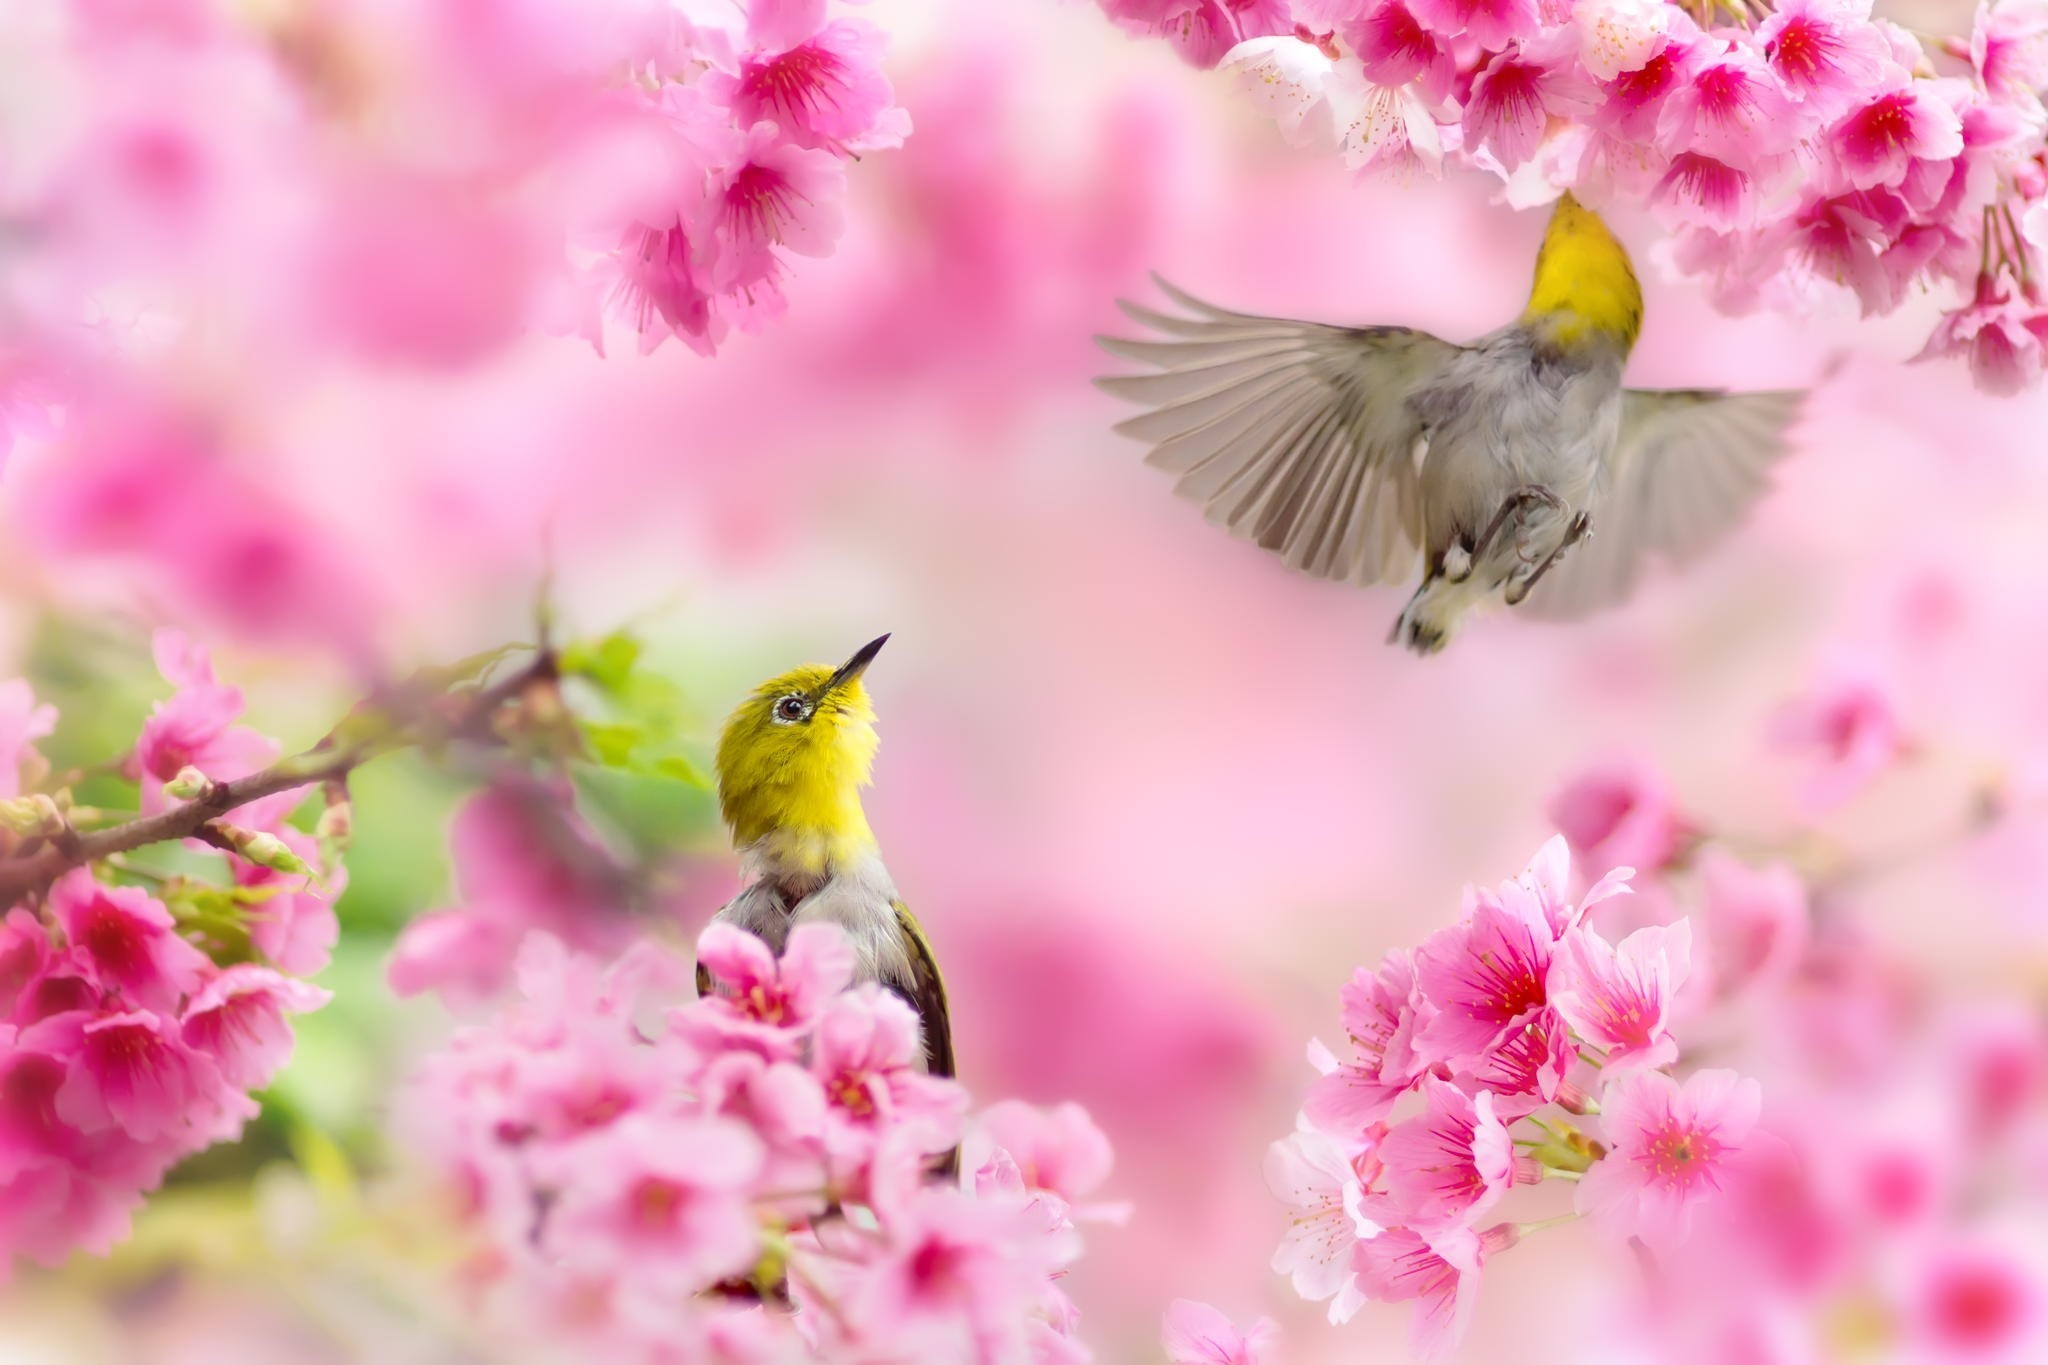 Res: 2048x1365, Spring Backgrounds Free